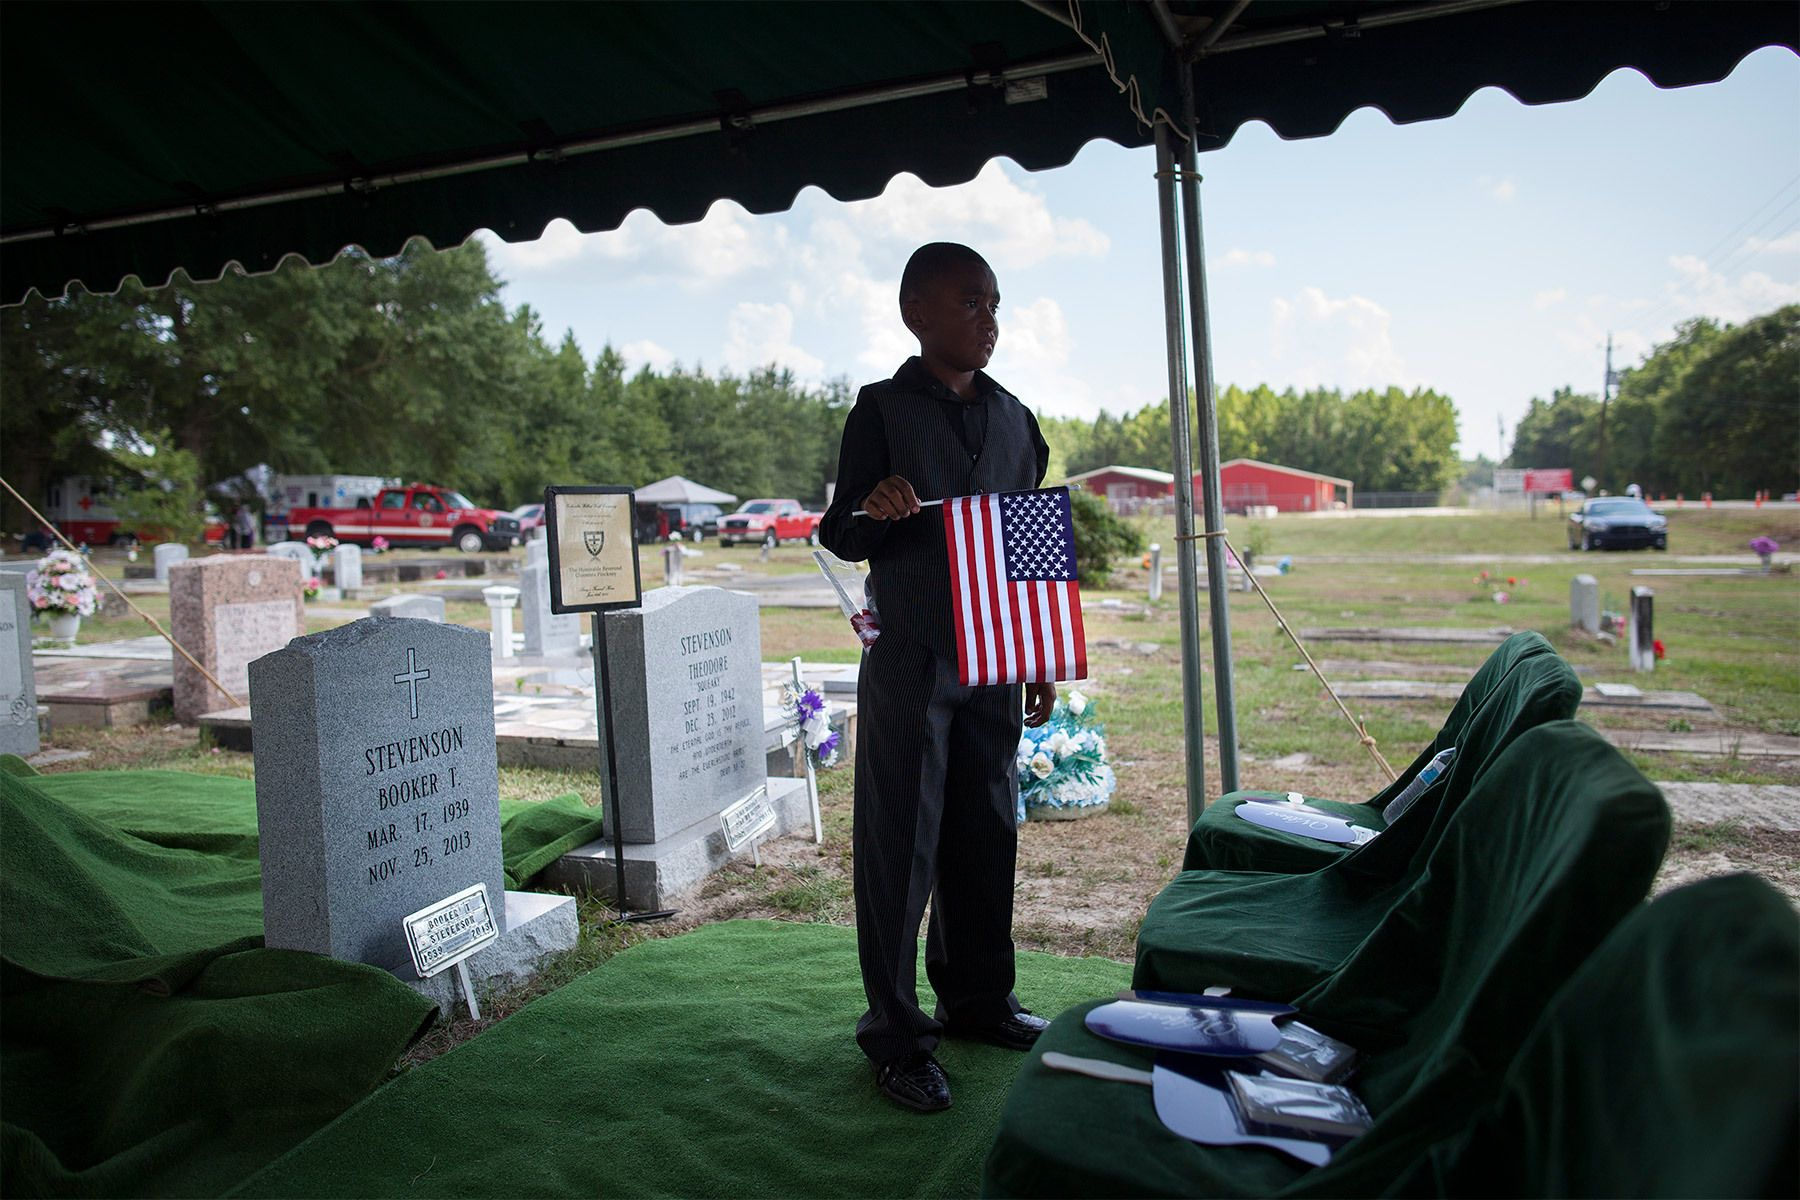 Family friend Kendrell Heriot (11) of Gresham, South Carolina, holds an American flag before the start of the burial service of Reverend Clementa Pinckney at the St James AME Church Cemetery in Marion, South Carolina June 26, 2015. Reverend Pinckney, a widely admired state senator and pastor of Charleston's Emanuel African Methodist Episcopal Church, was among the nine people who died when a gunman opened fire during Bible study.  REUTERS/Randall Hill